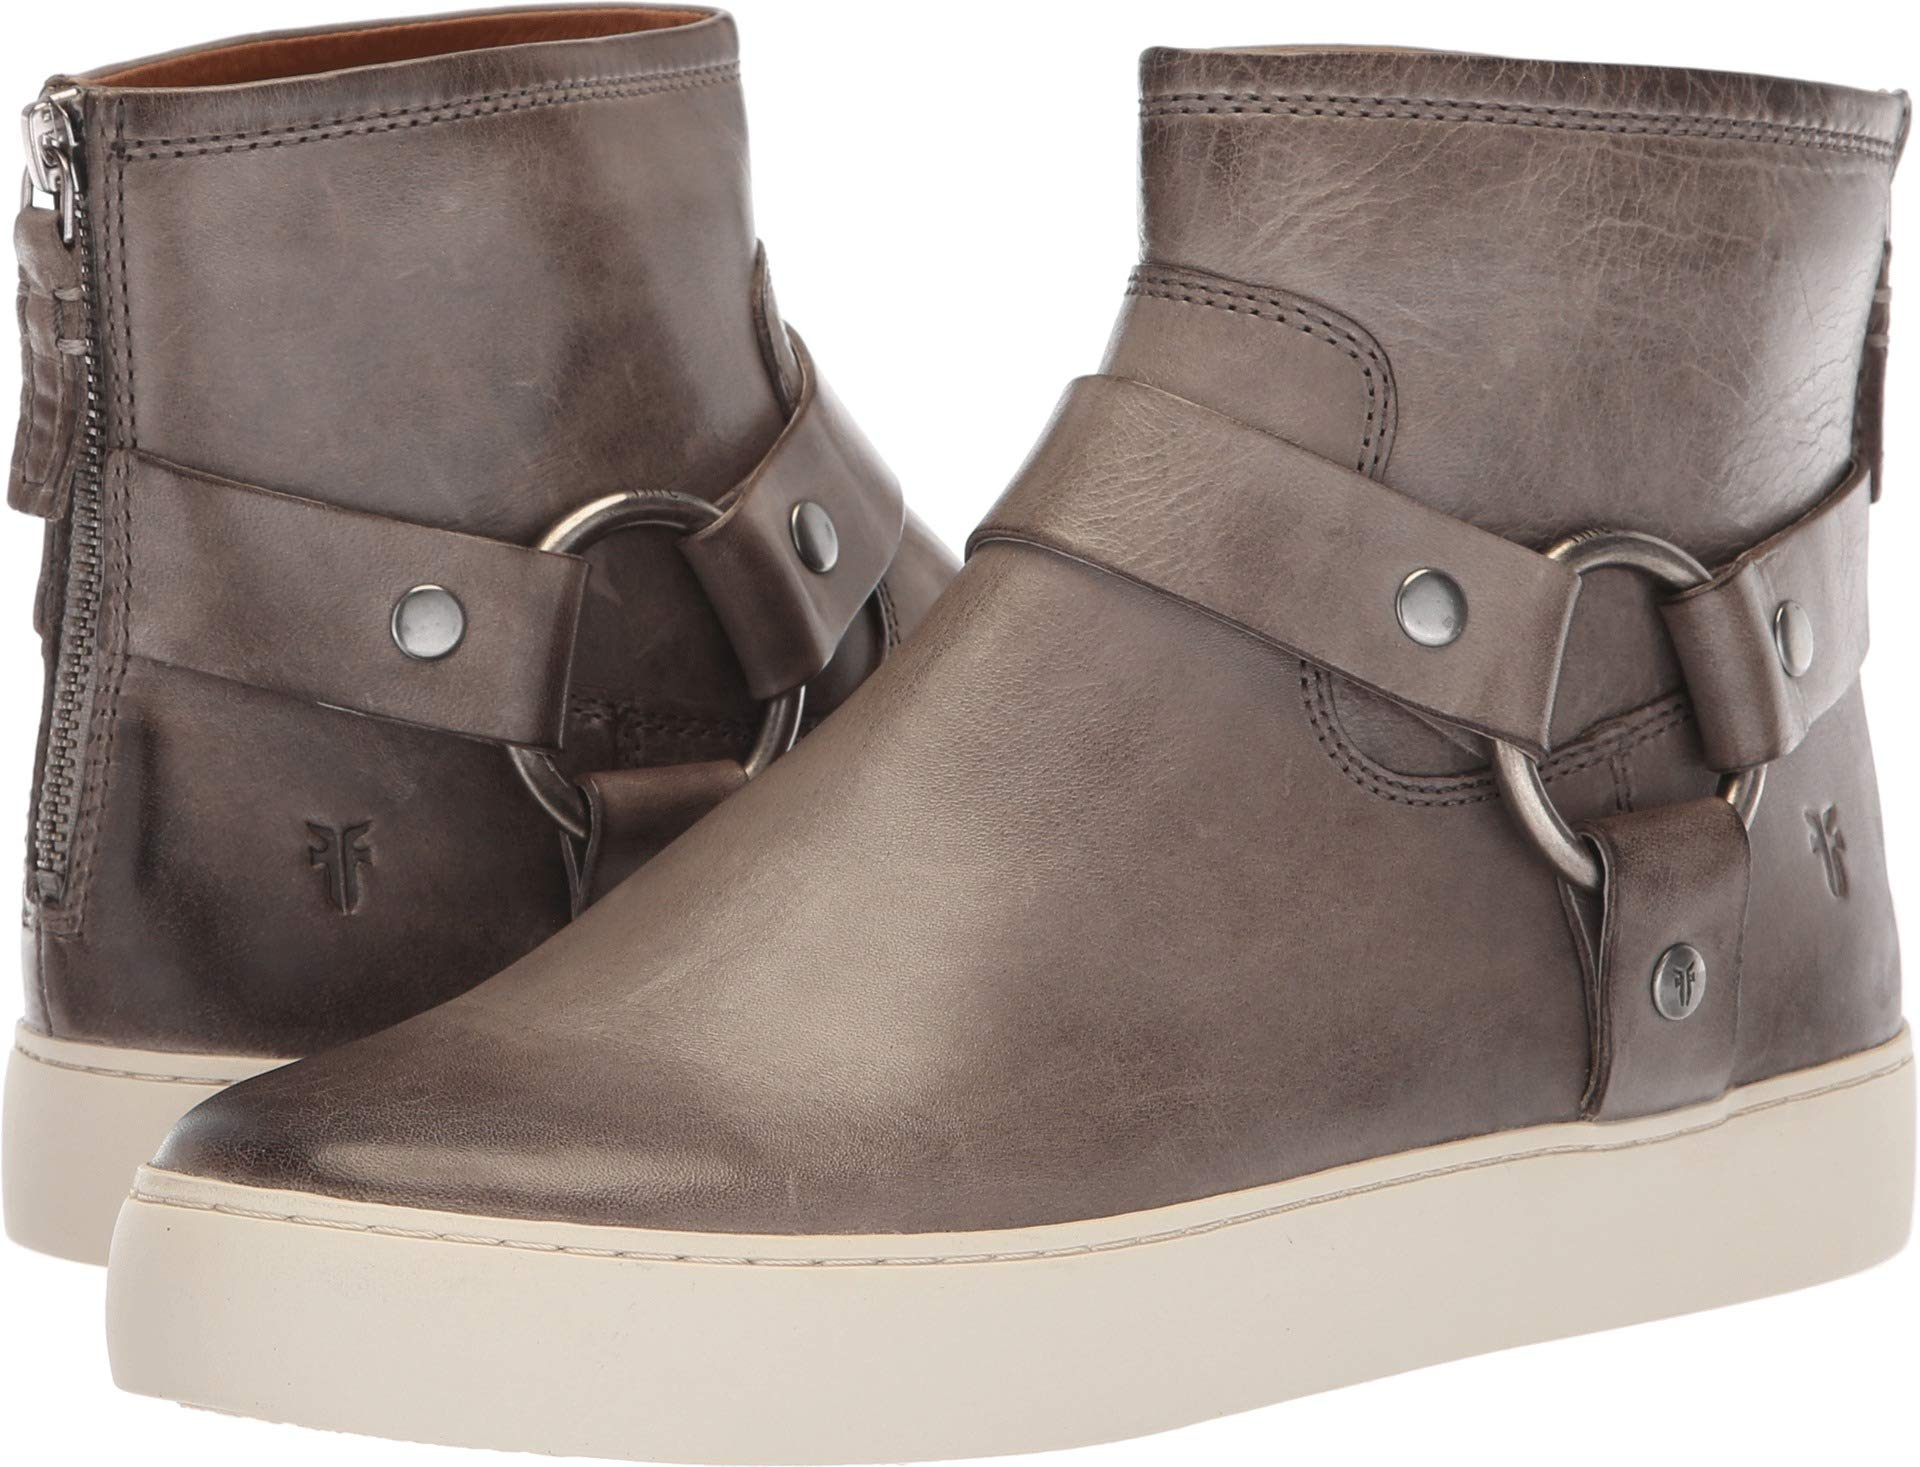 FRYE Women's Lena Harness Bootie Sneaker, Grey, 11 M US by FRYE